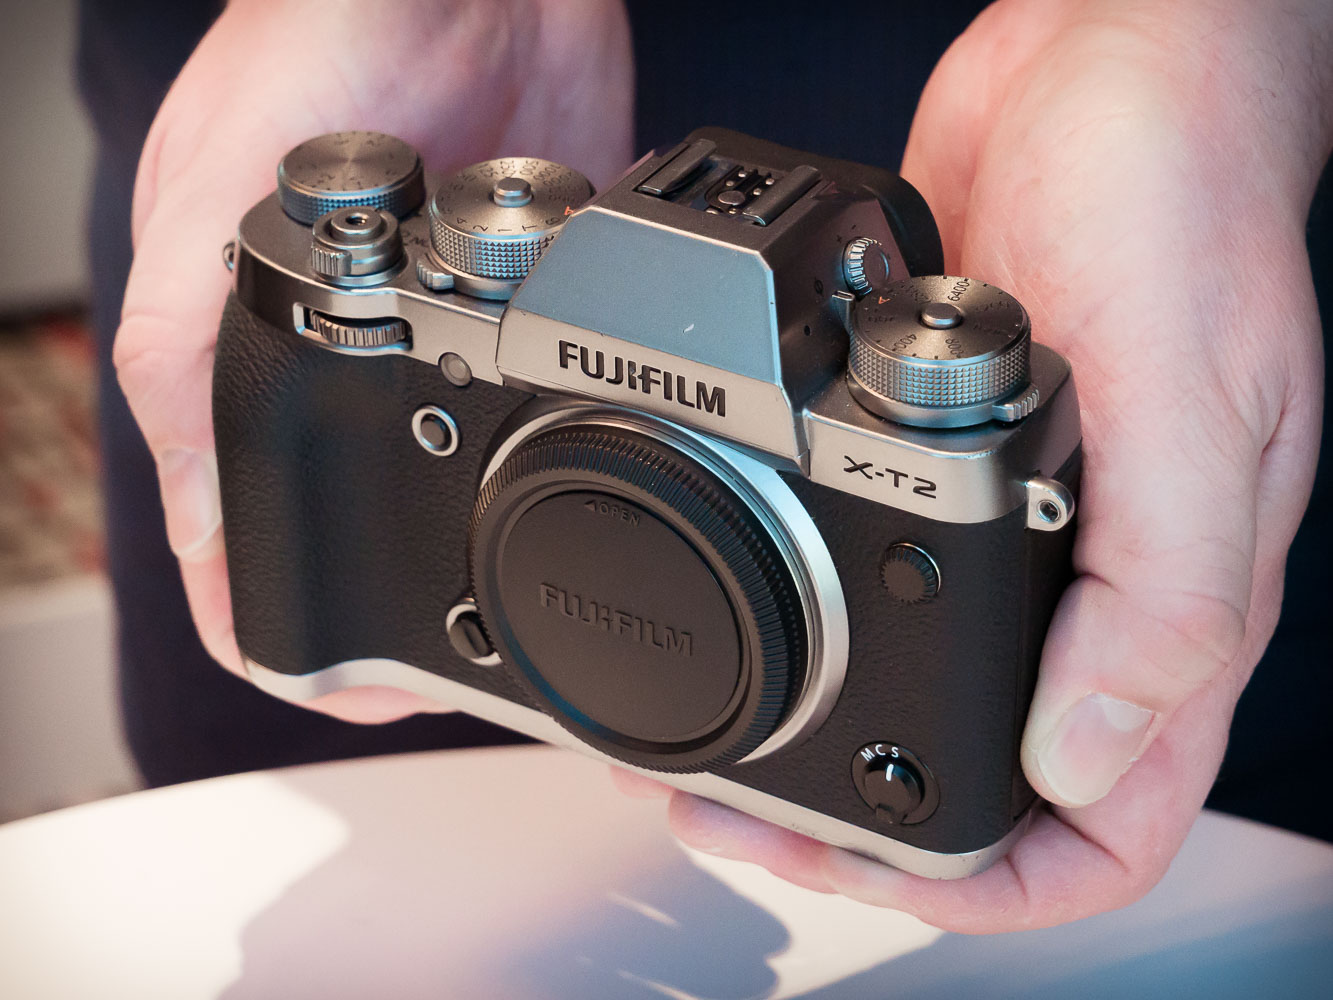 Fujifilm Mirrorless X T2 Body Only Intax Share Sp2 Silver Daftar Xf 56mm F12 Hands On With New Graphite And Pro2